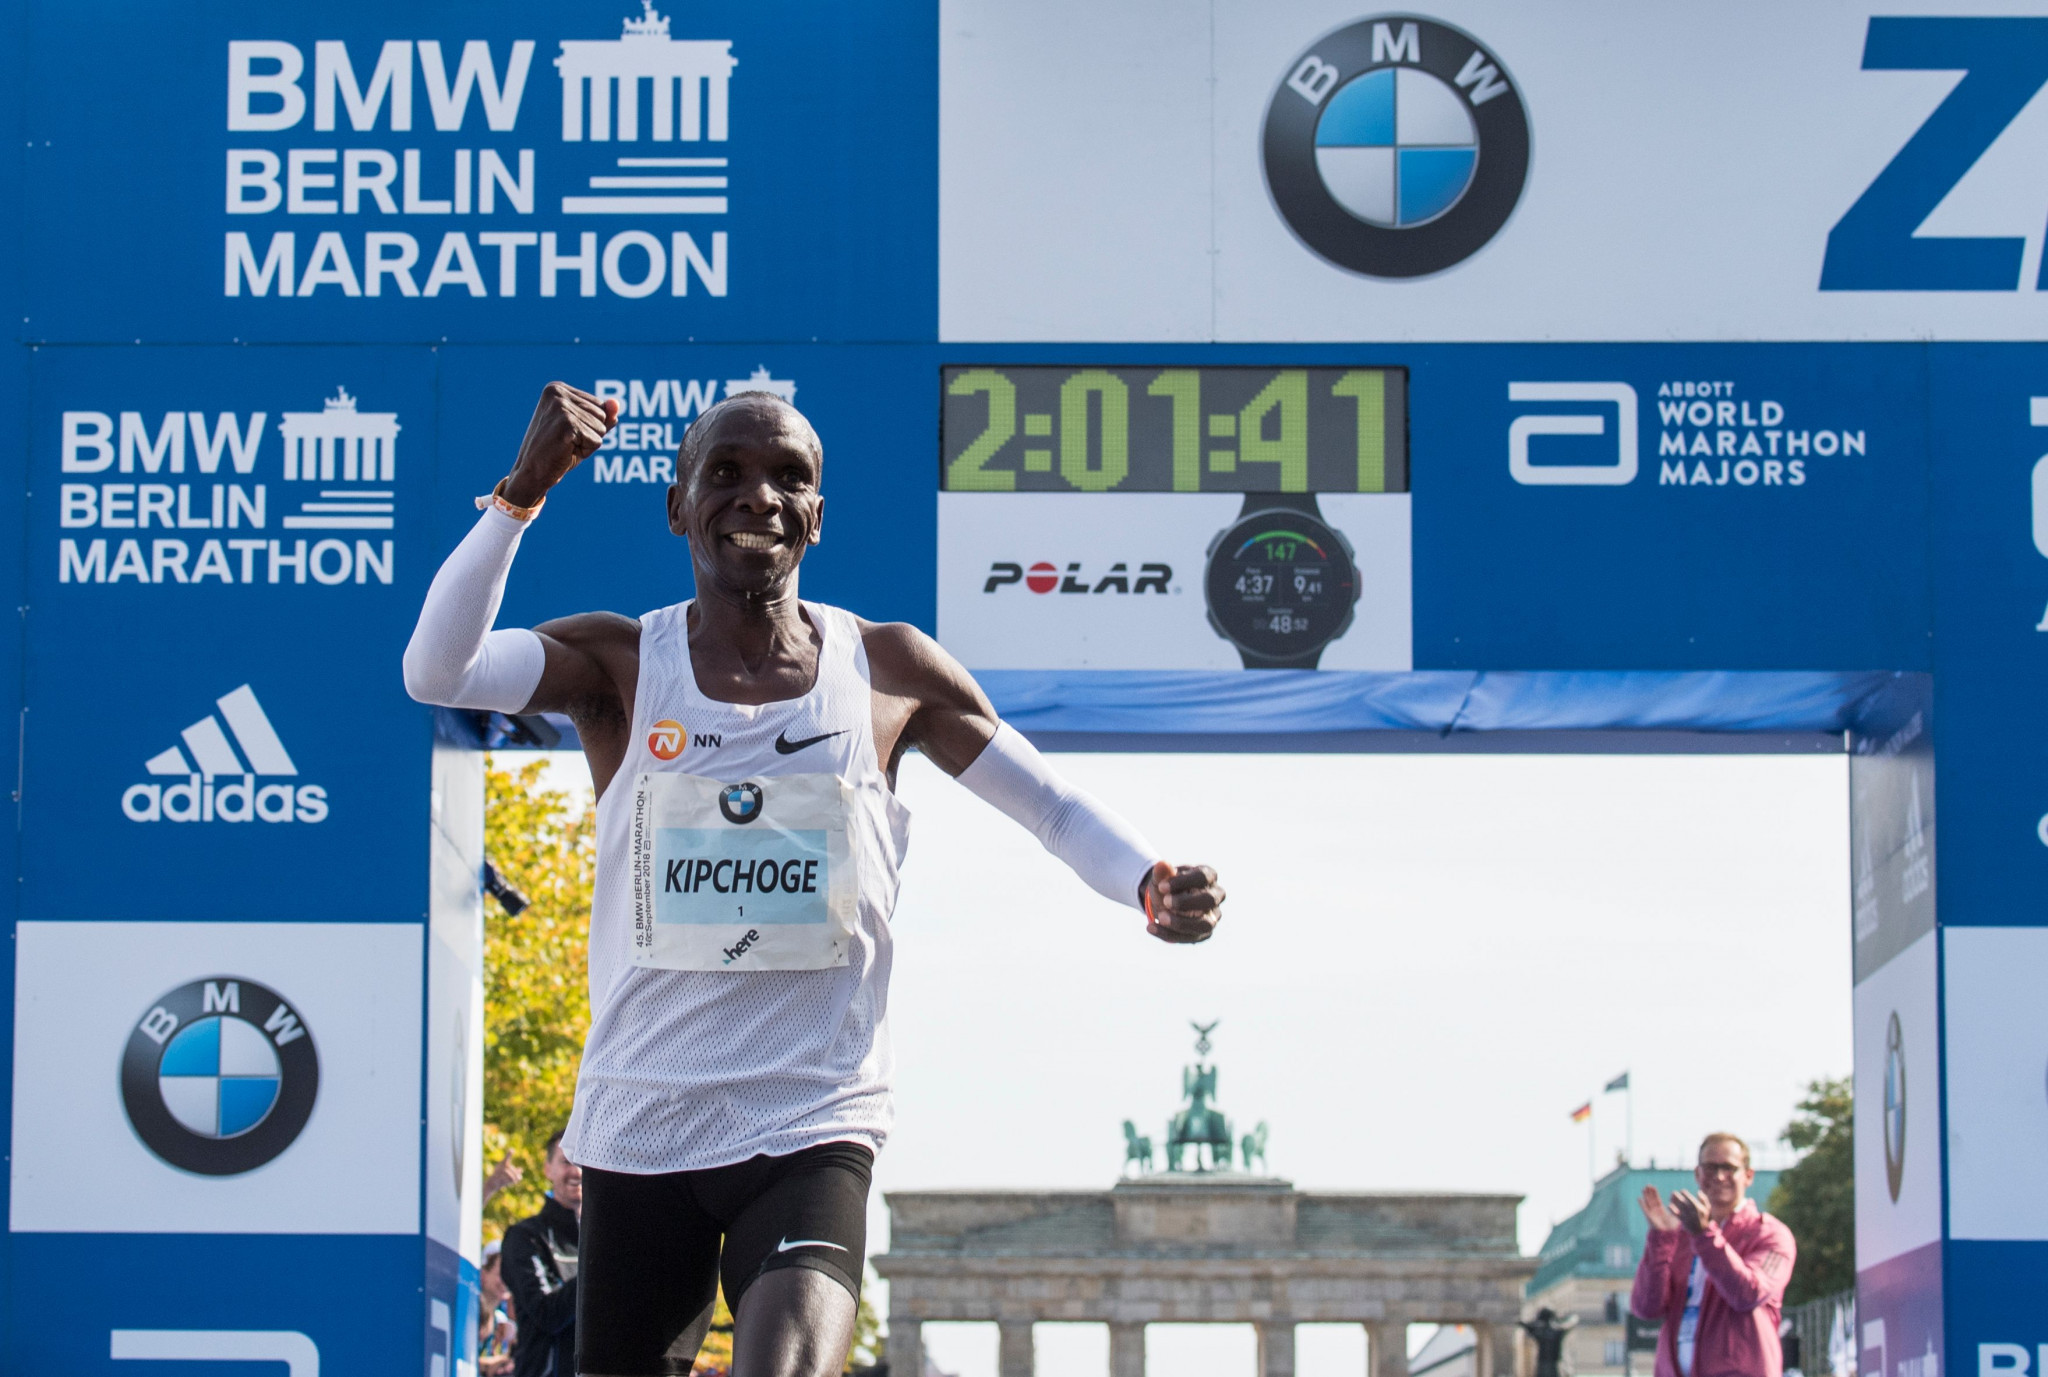 Kipchoge and Cherono named Best Marathon Runners of 2018